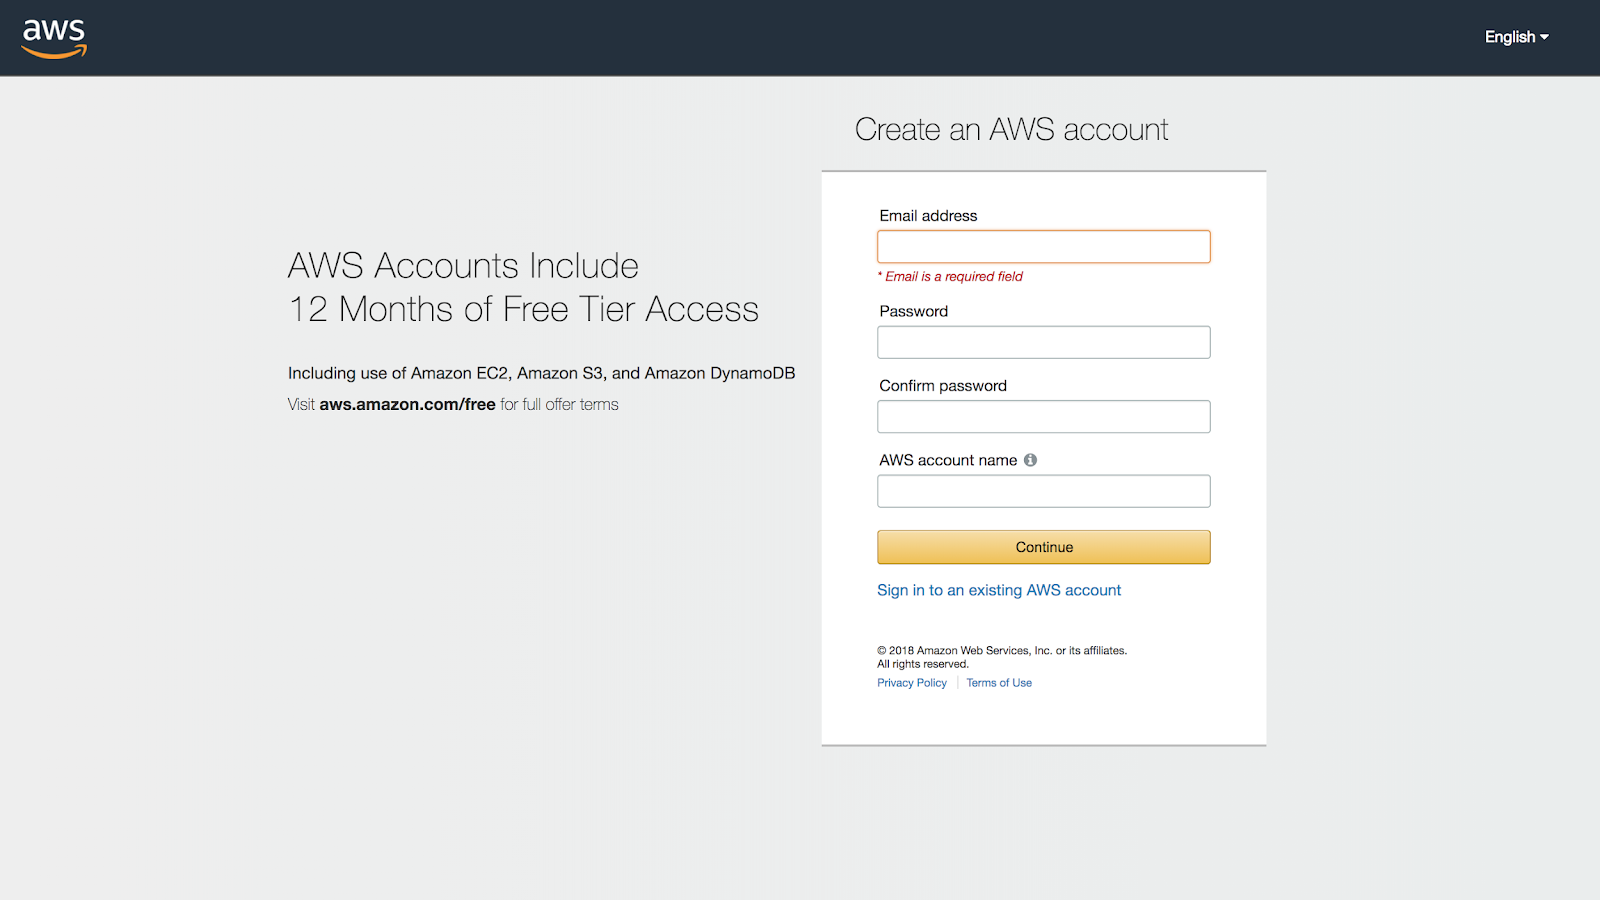 2. Create AWS Free Tier Account